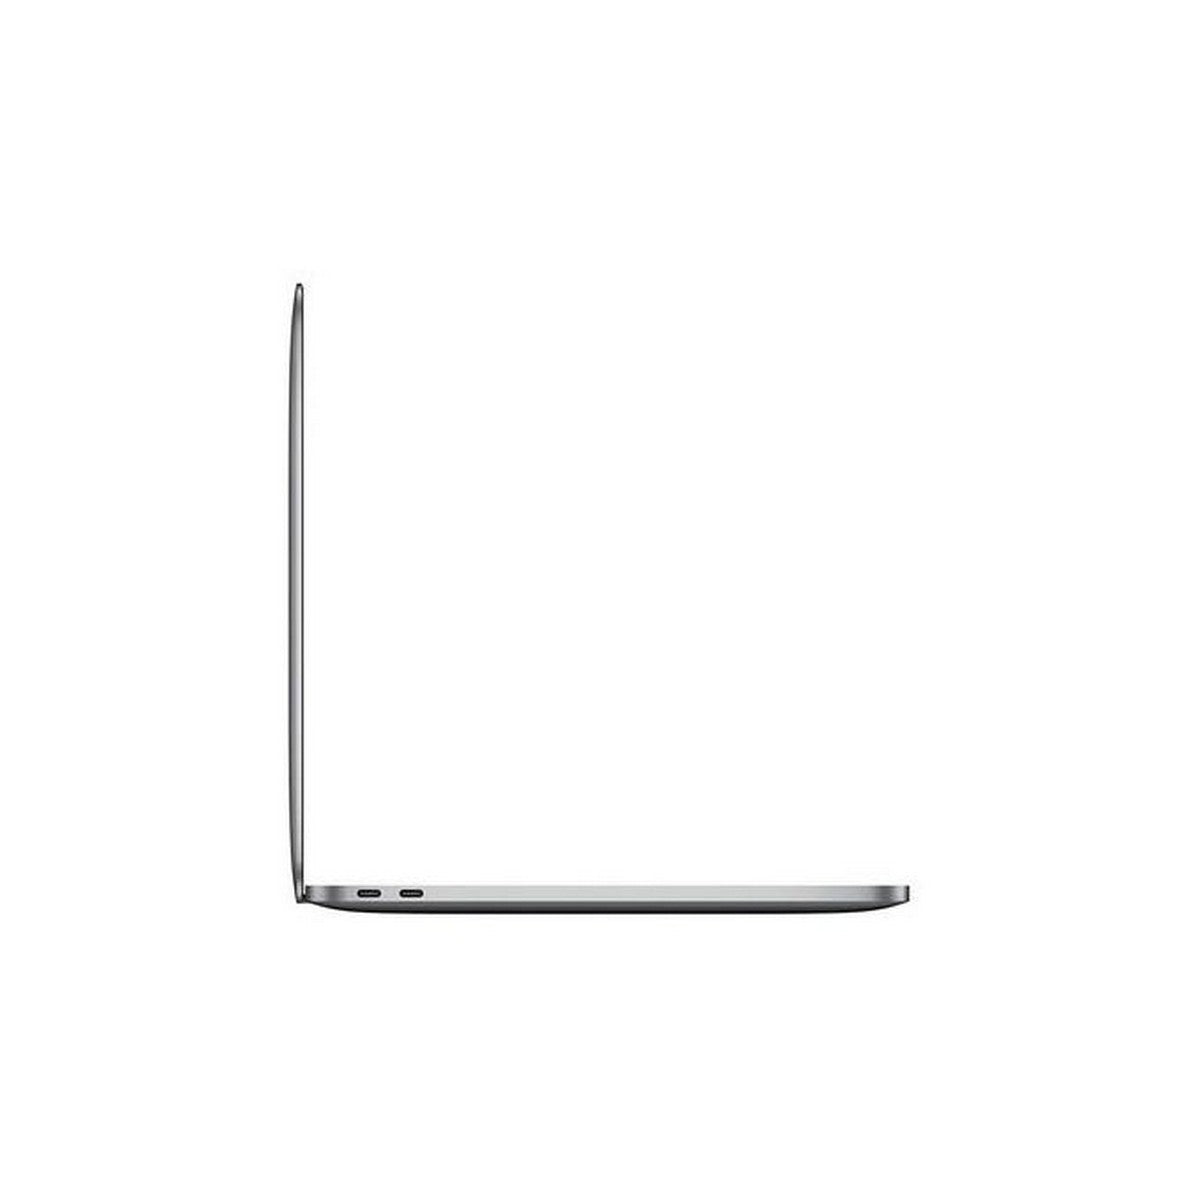 Apple MacBook Pro 13 With Touch Bar Laptop (Mid 2019) 13.3'' Retina display , Intel Core i7 1.7GHz Up To 4.5GHz, 8GB RAM, Intel Iris P645 GPU, 256GB SSD, Touch ID, Model:Z0W40LL/A, MacOS, English Keyboard, Space Grey